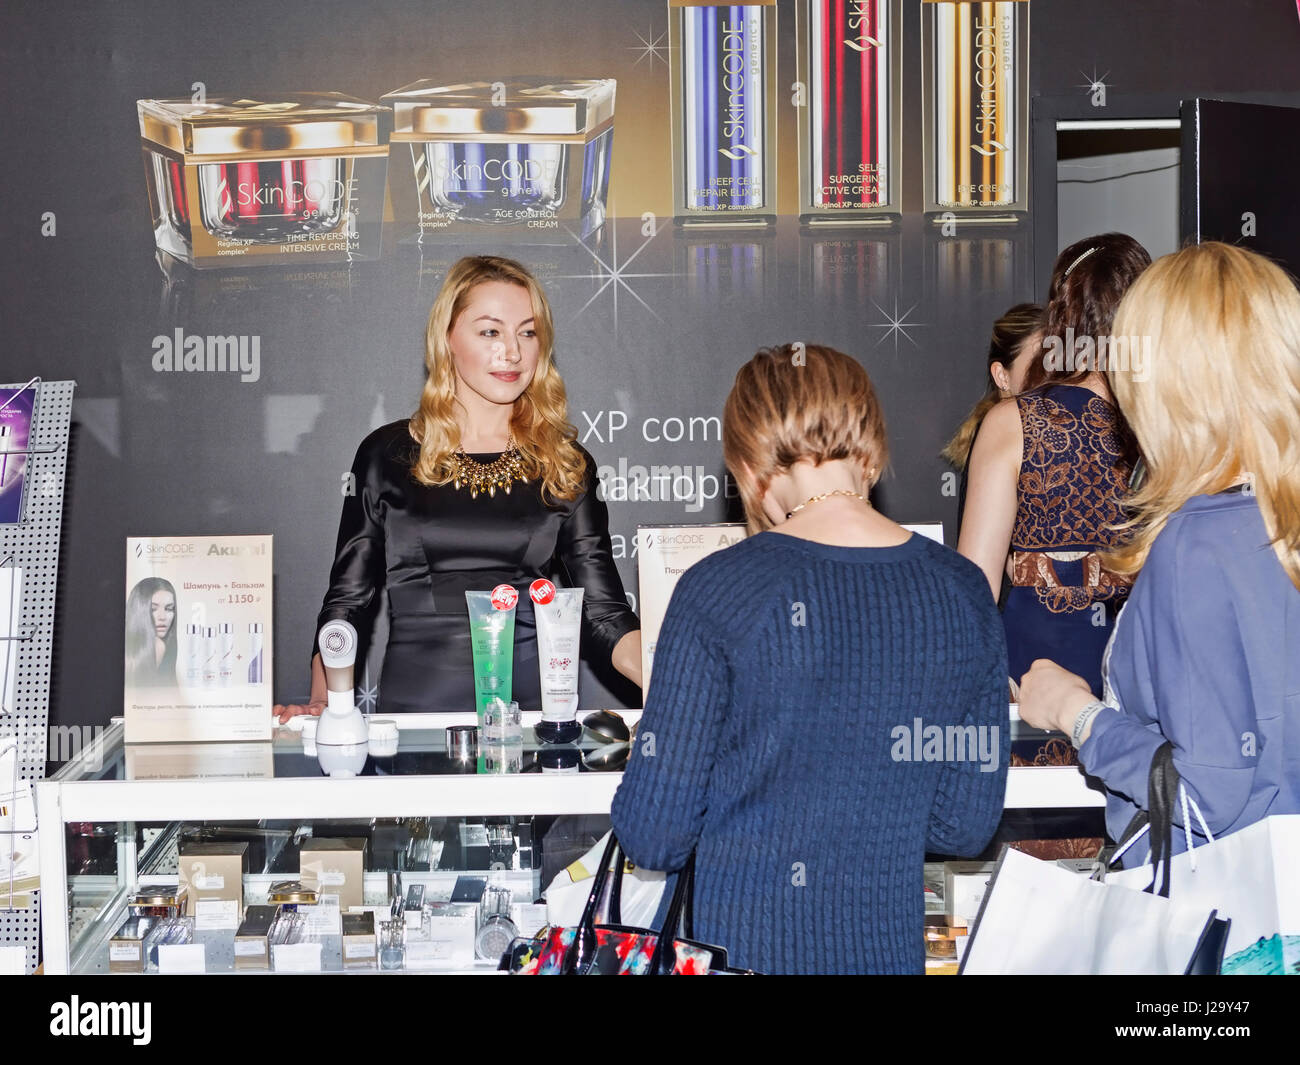 Moscow, Russian Federation - April 21, 2017: Intercharm XVI International exhibition of professional cosmetics and - Stock Image